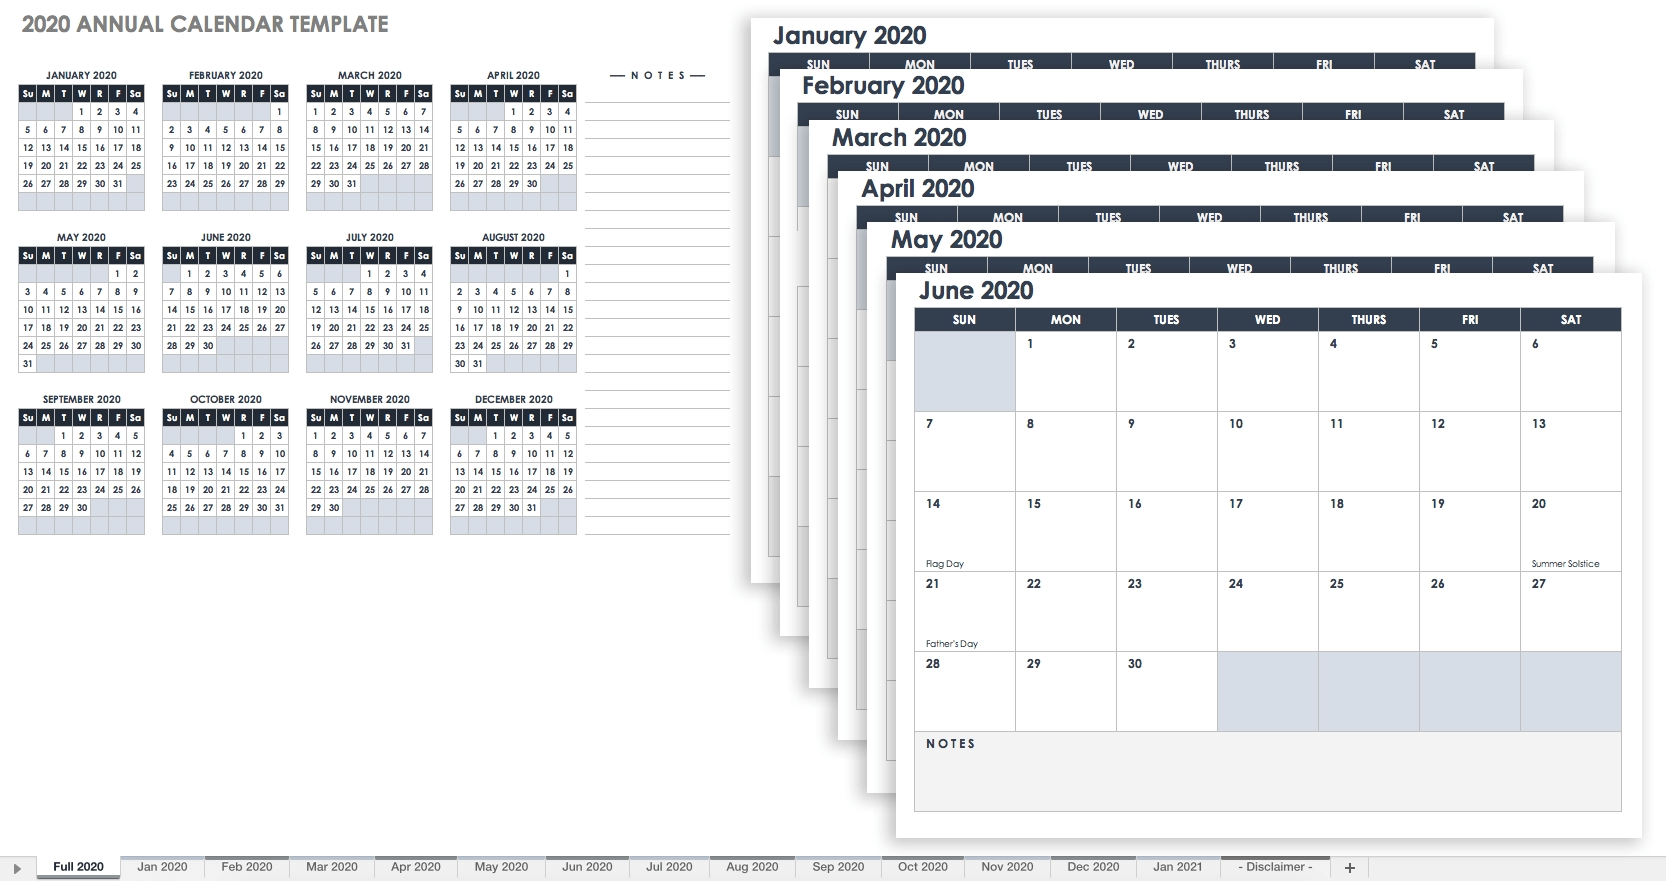 Free Excel Calendar Templates-At A Glance Academic Planner 2020 Template